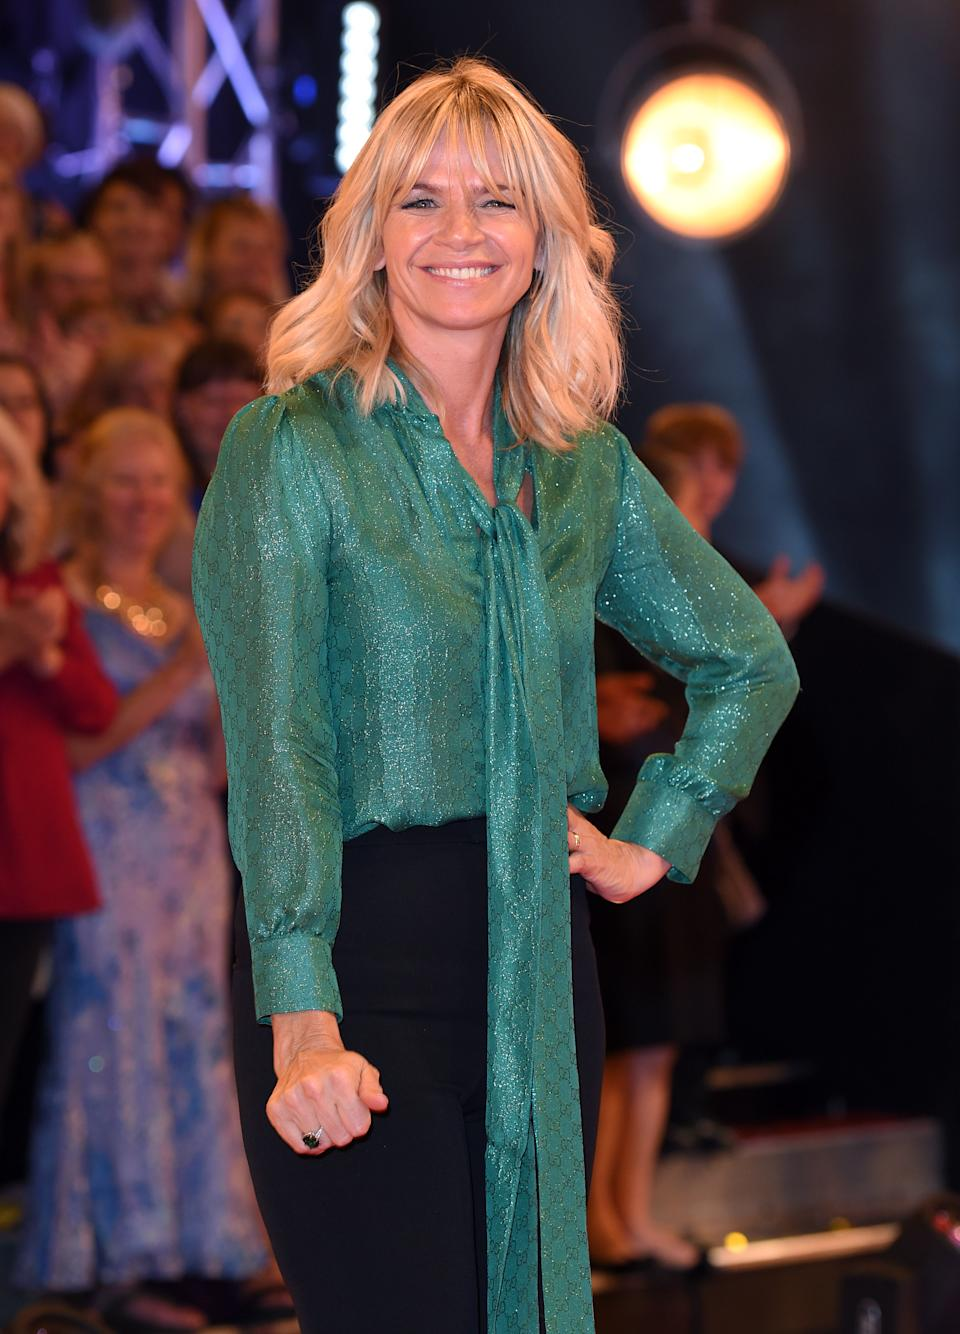 BOREHAMWOOD, ENGLAND - AUGUST 30:  Zoe Ball arrives for the Red Carpet Launch of 'Strictly Come Dancing 2016' at Elstree Studios on August 30, 2016 in Borehamwood, England.  (Photo by Karwai Tang/WireImage)